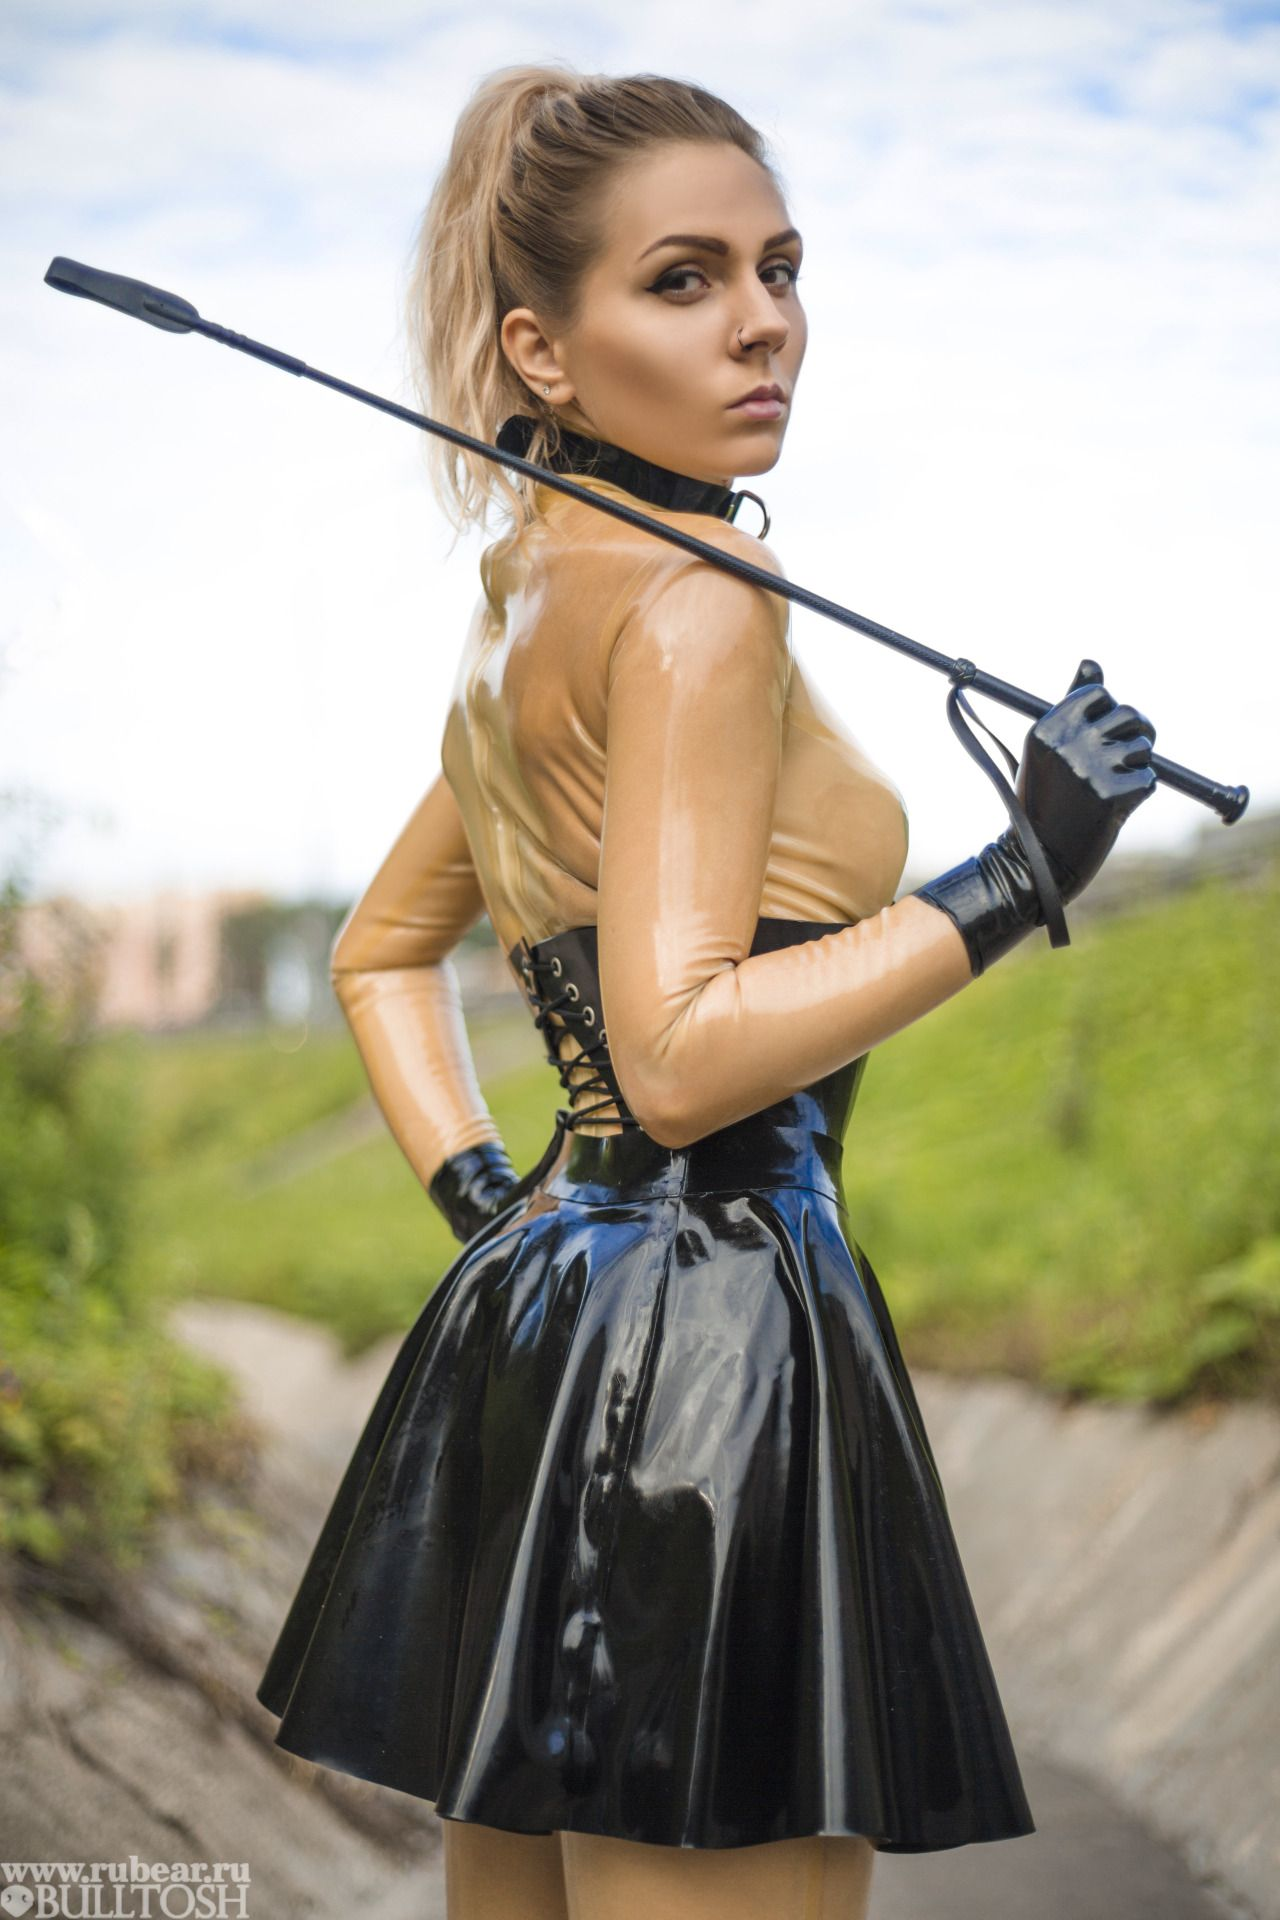 Katerina piglet rubear transparent latex beautiful pinterest